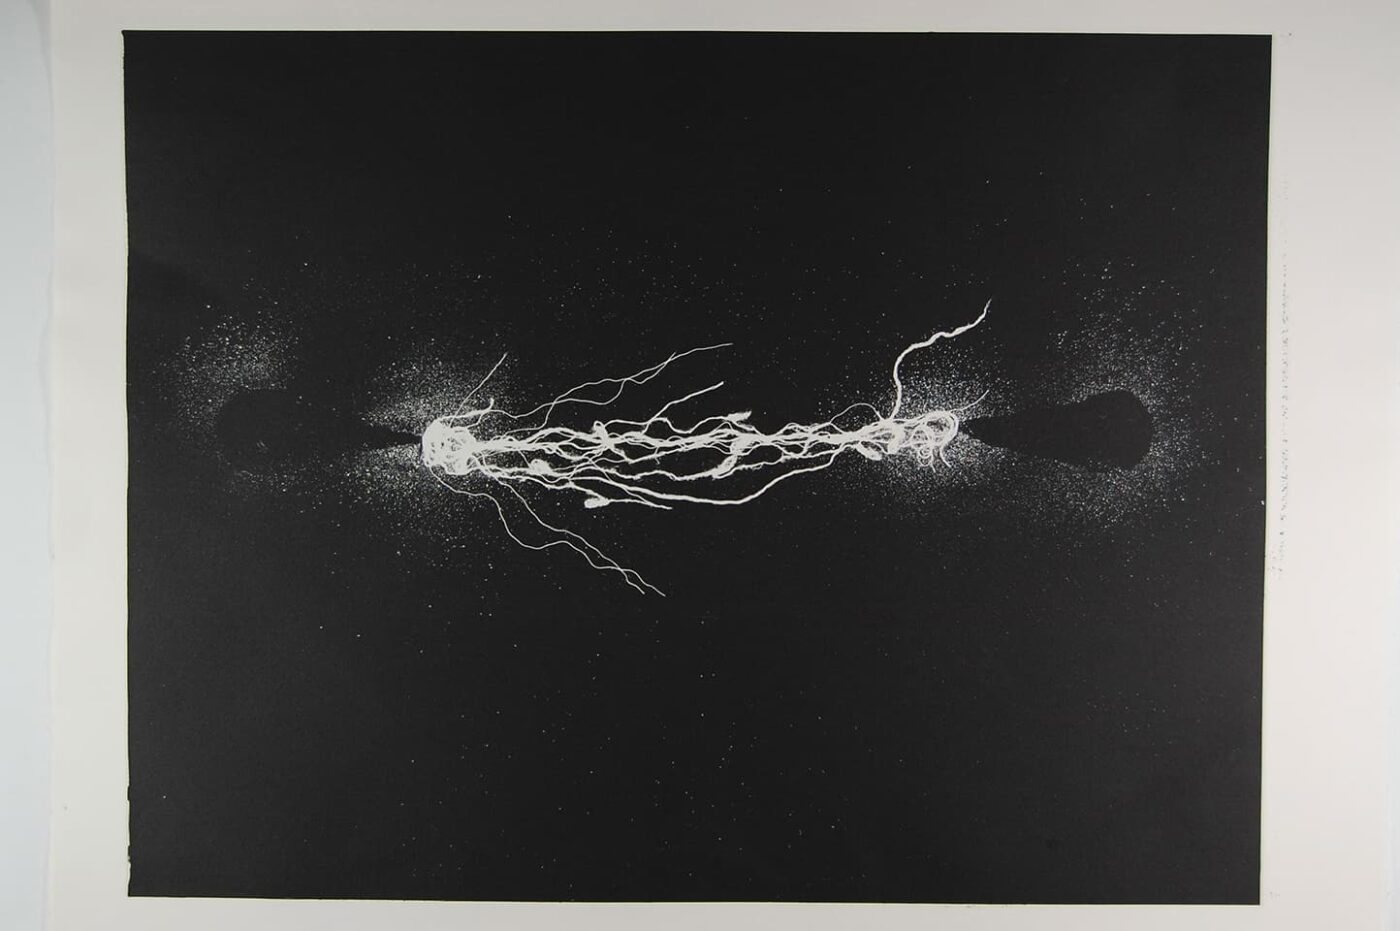 <strong>Out of Body 1.1</strong>, Susan Aldworth, monoprint, 56 x 76 cms, 2009.